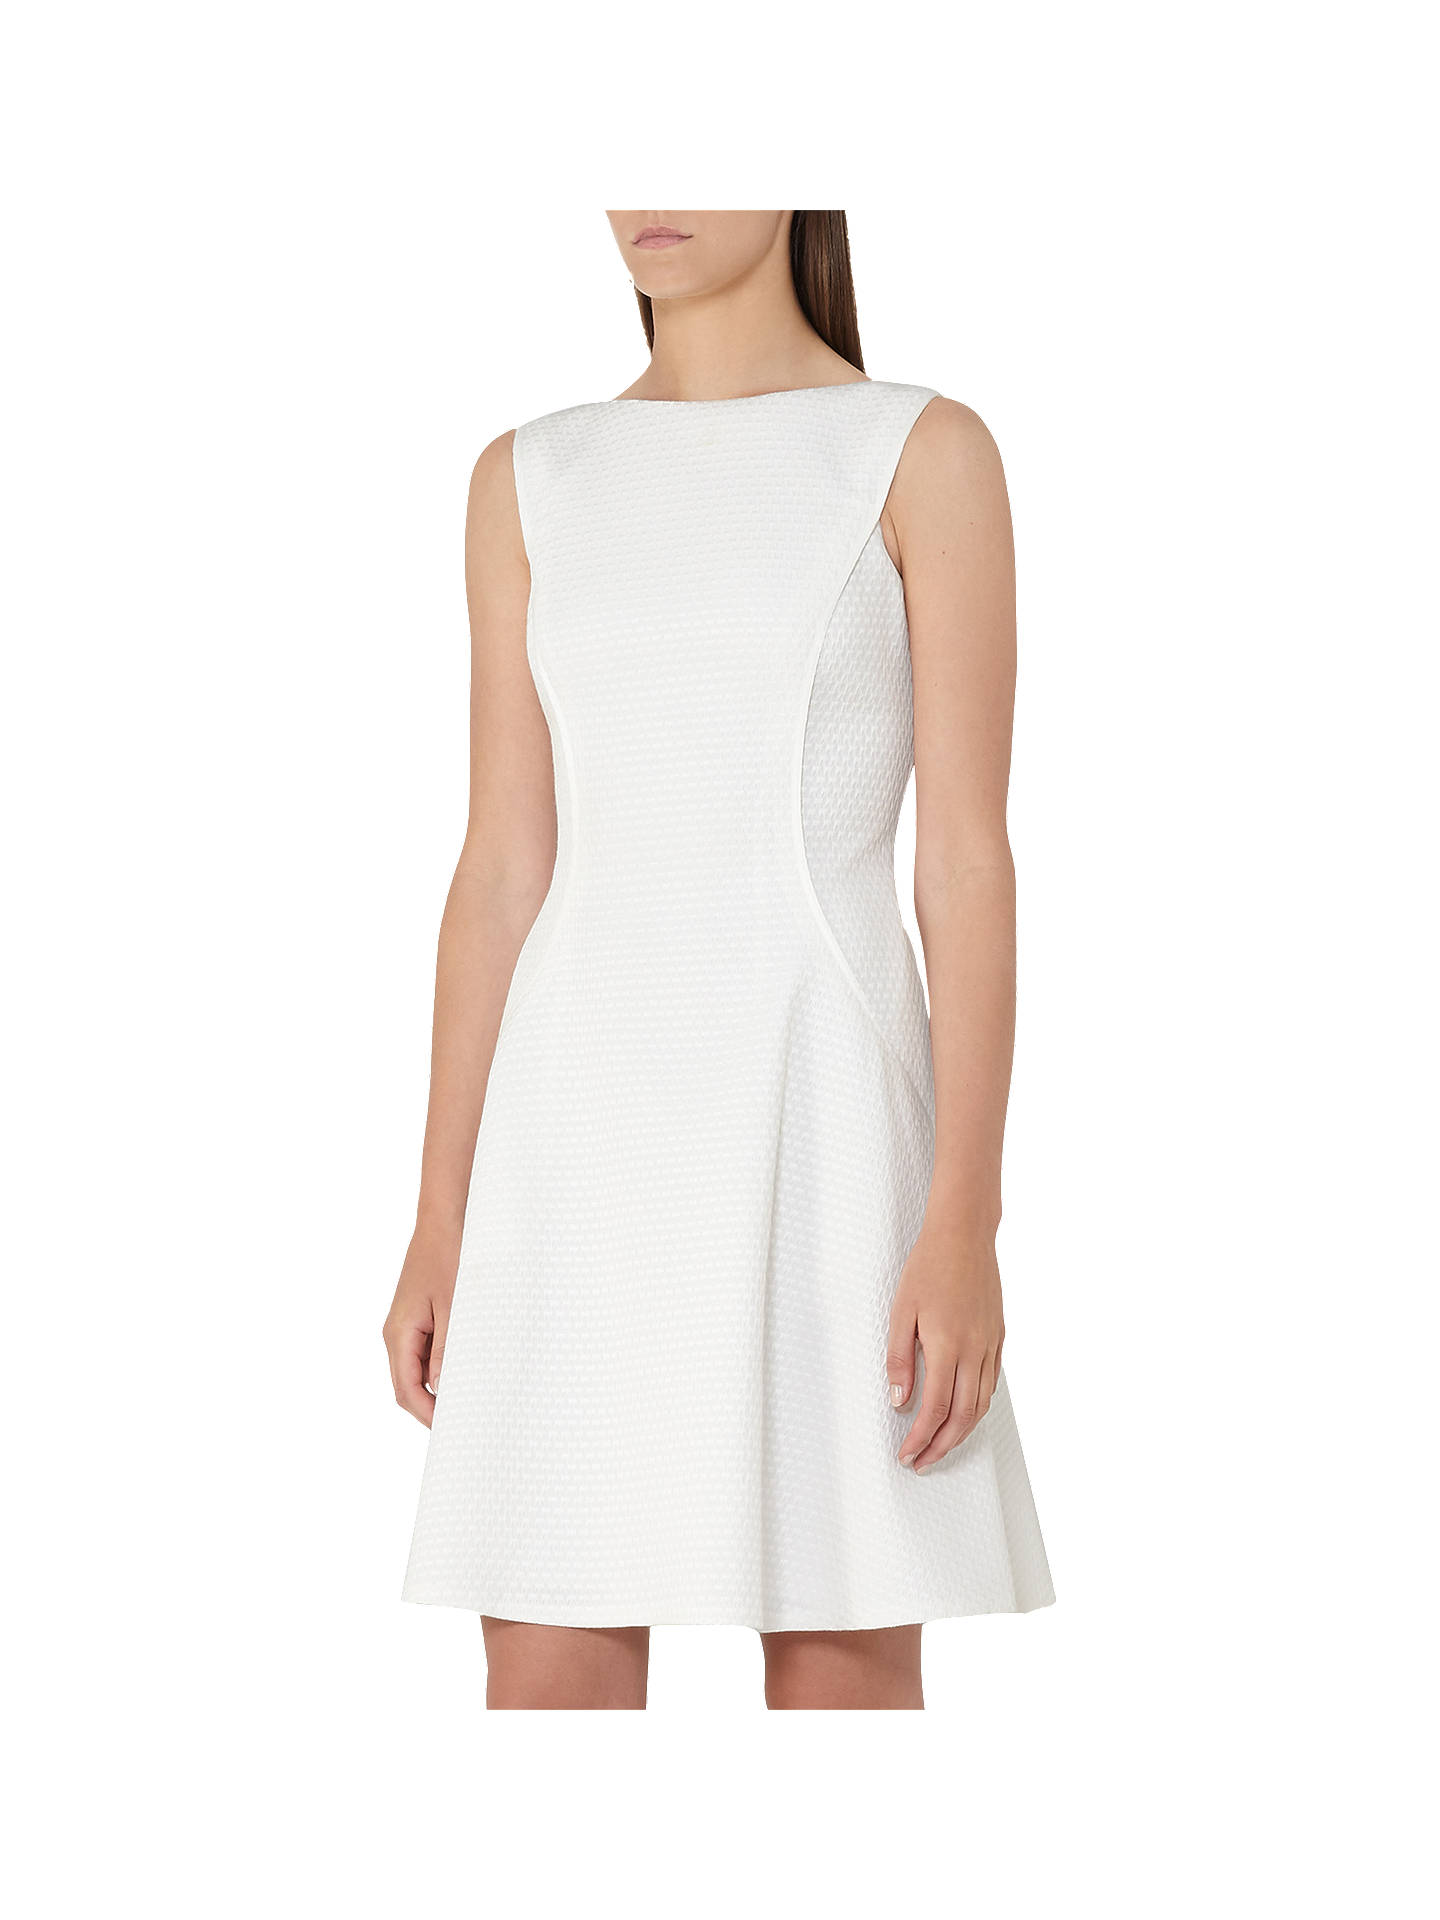 472c01b7f634 Buy Reiss Cara Textured Dress